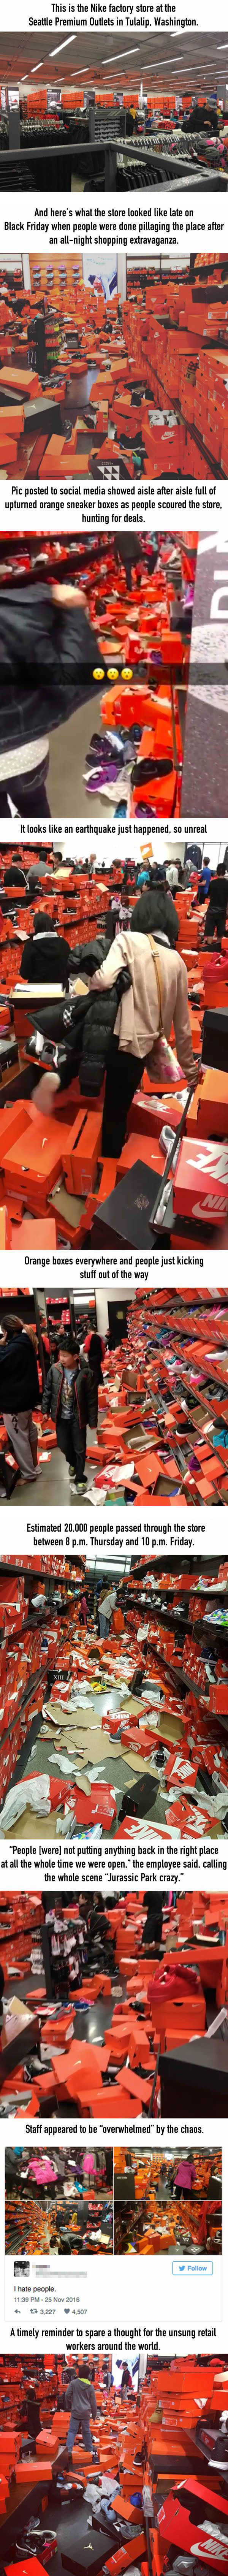 Nike Store Completely Destroyed By Black Friday Shoppers